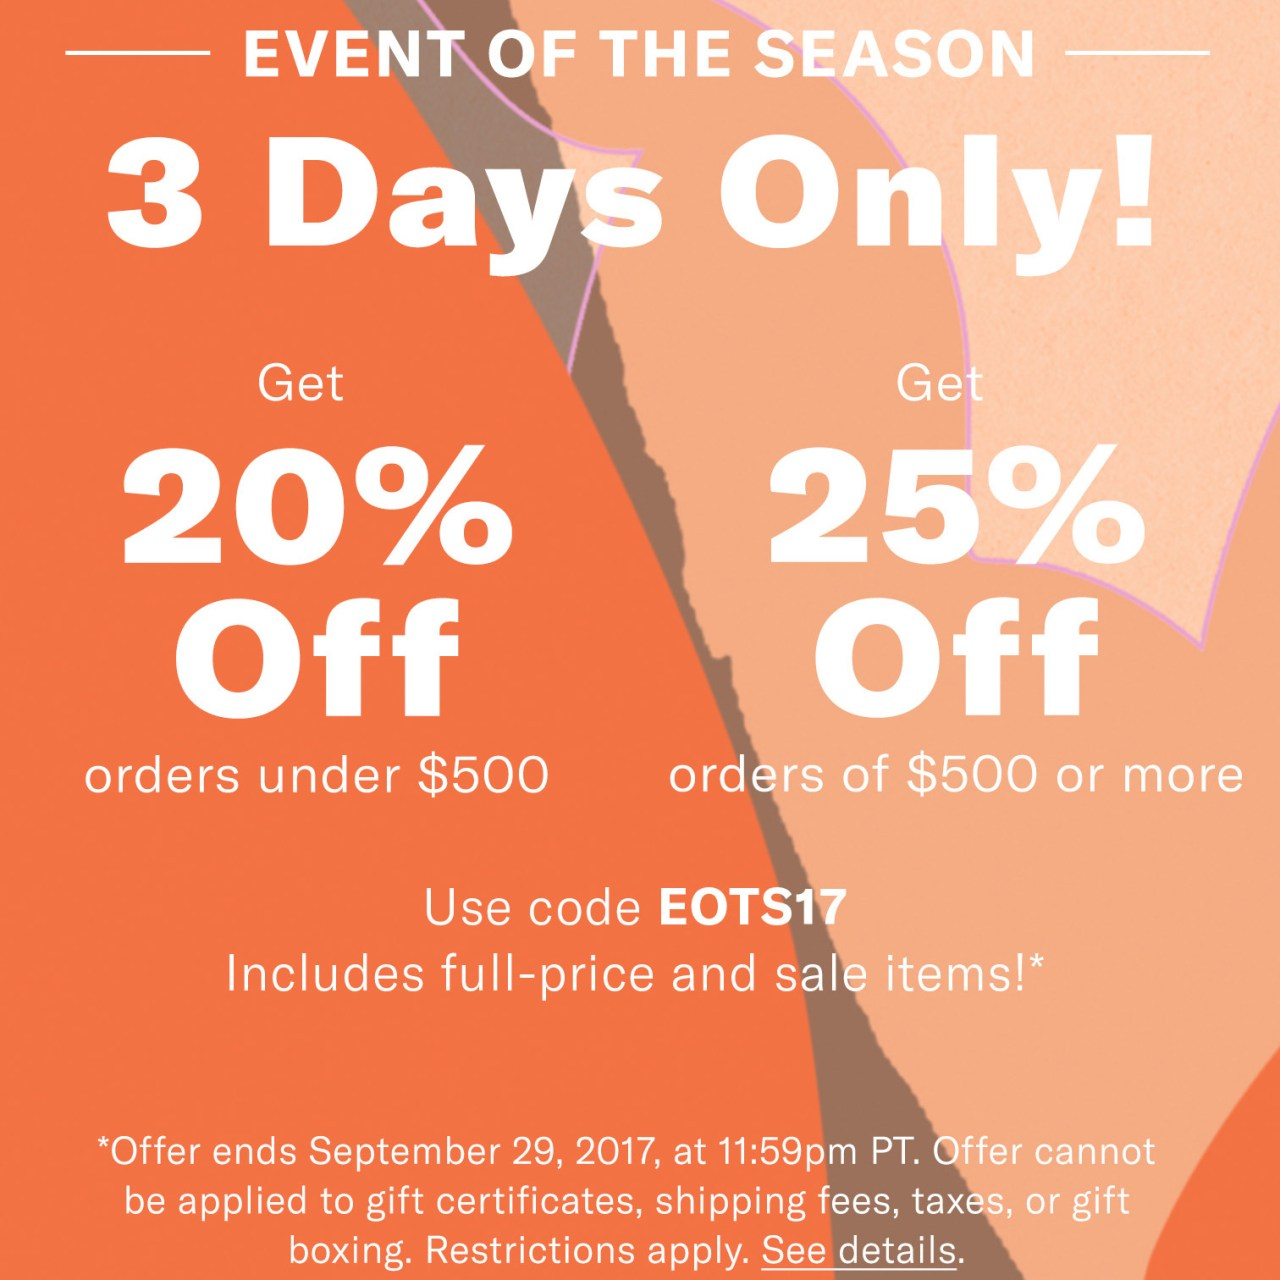 Shopbop Seasonal Event